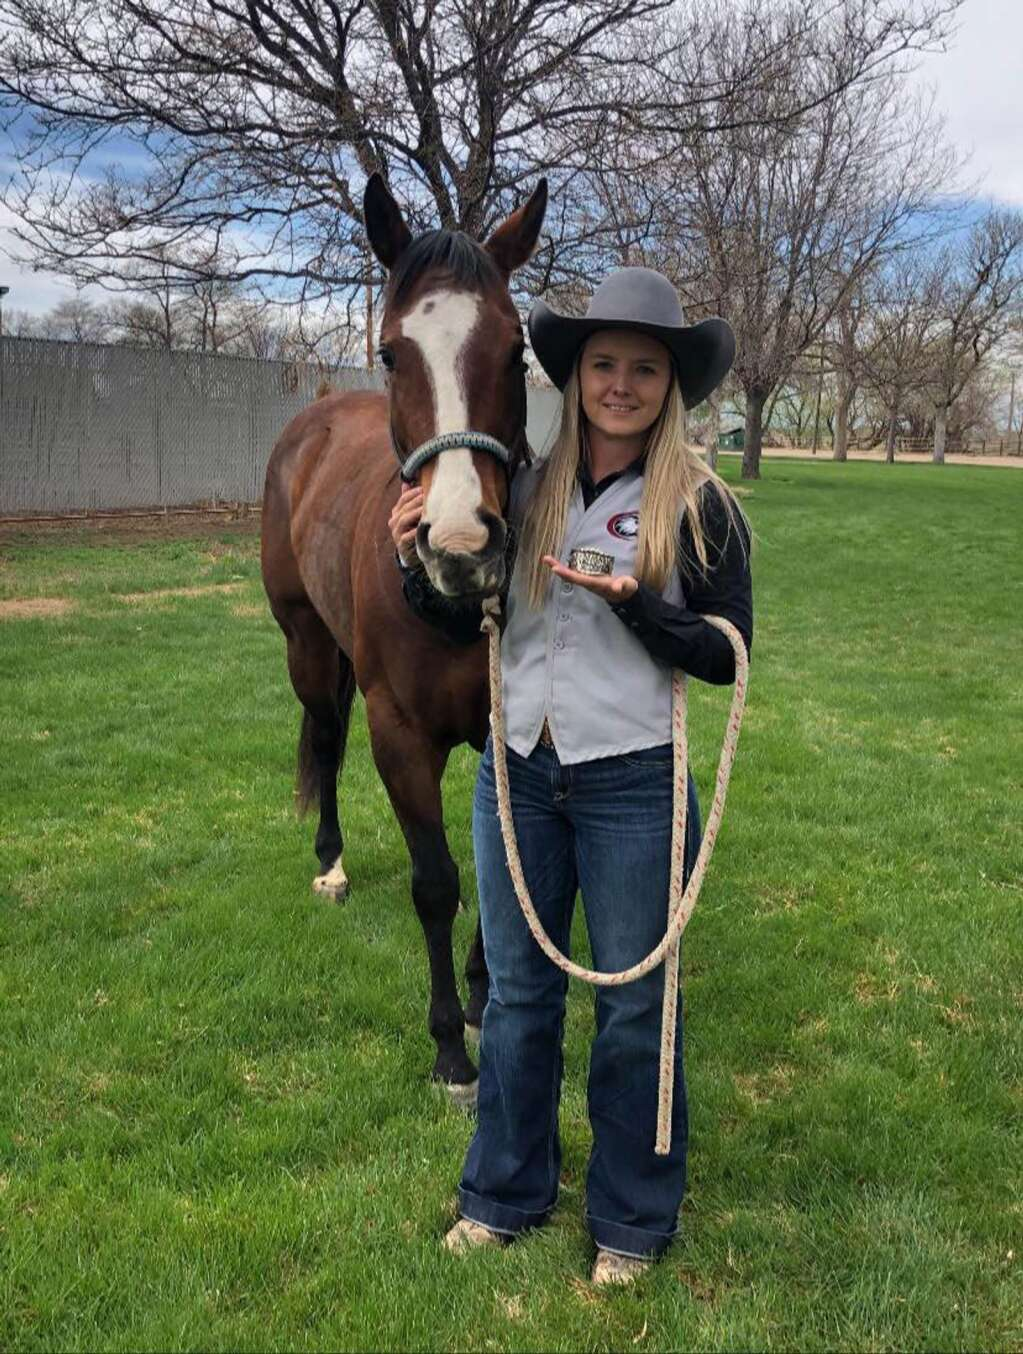 Ratchet and Brianna Williams roped their way to a fourth place finish at the College National Finals Rodeo in the breakaway roping. Just a few days later, Ratchet went down the fence to earn money in an Open Bridle Horse class. Photo courtesy Brianna Williams